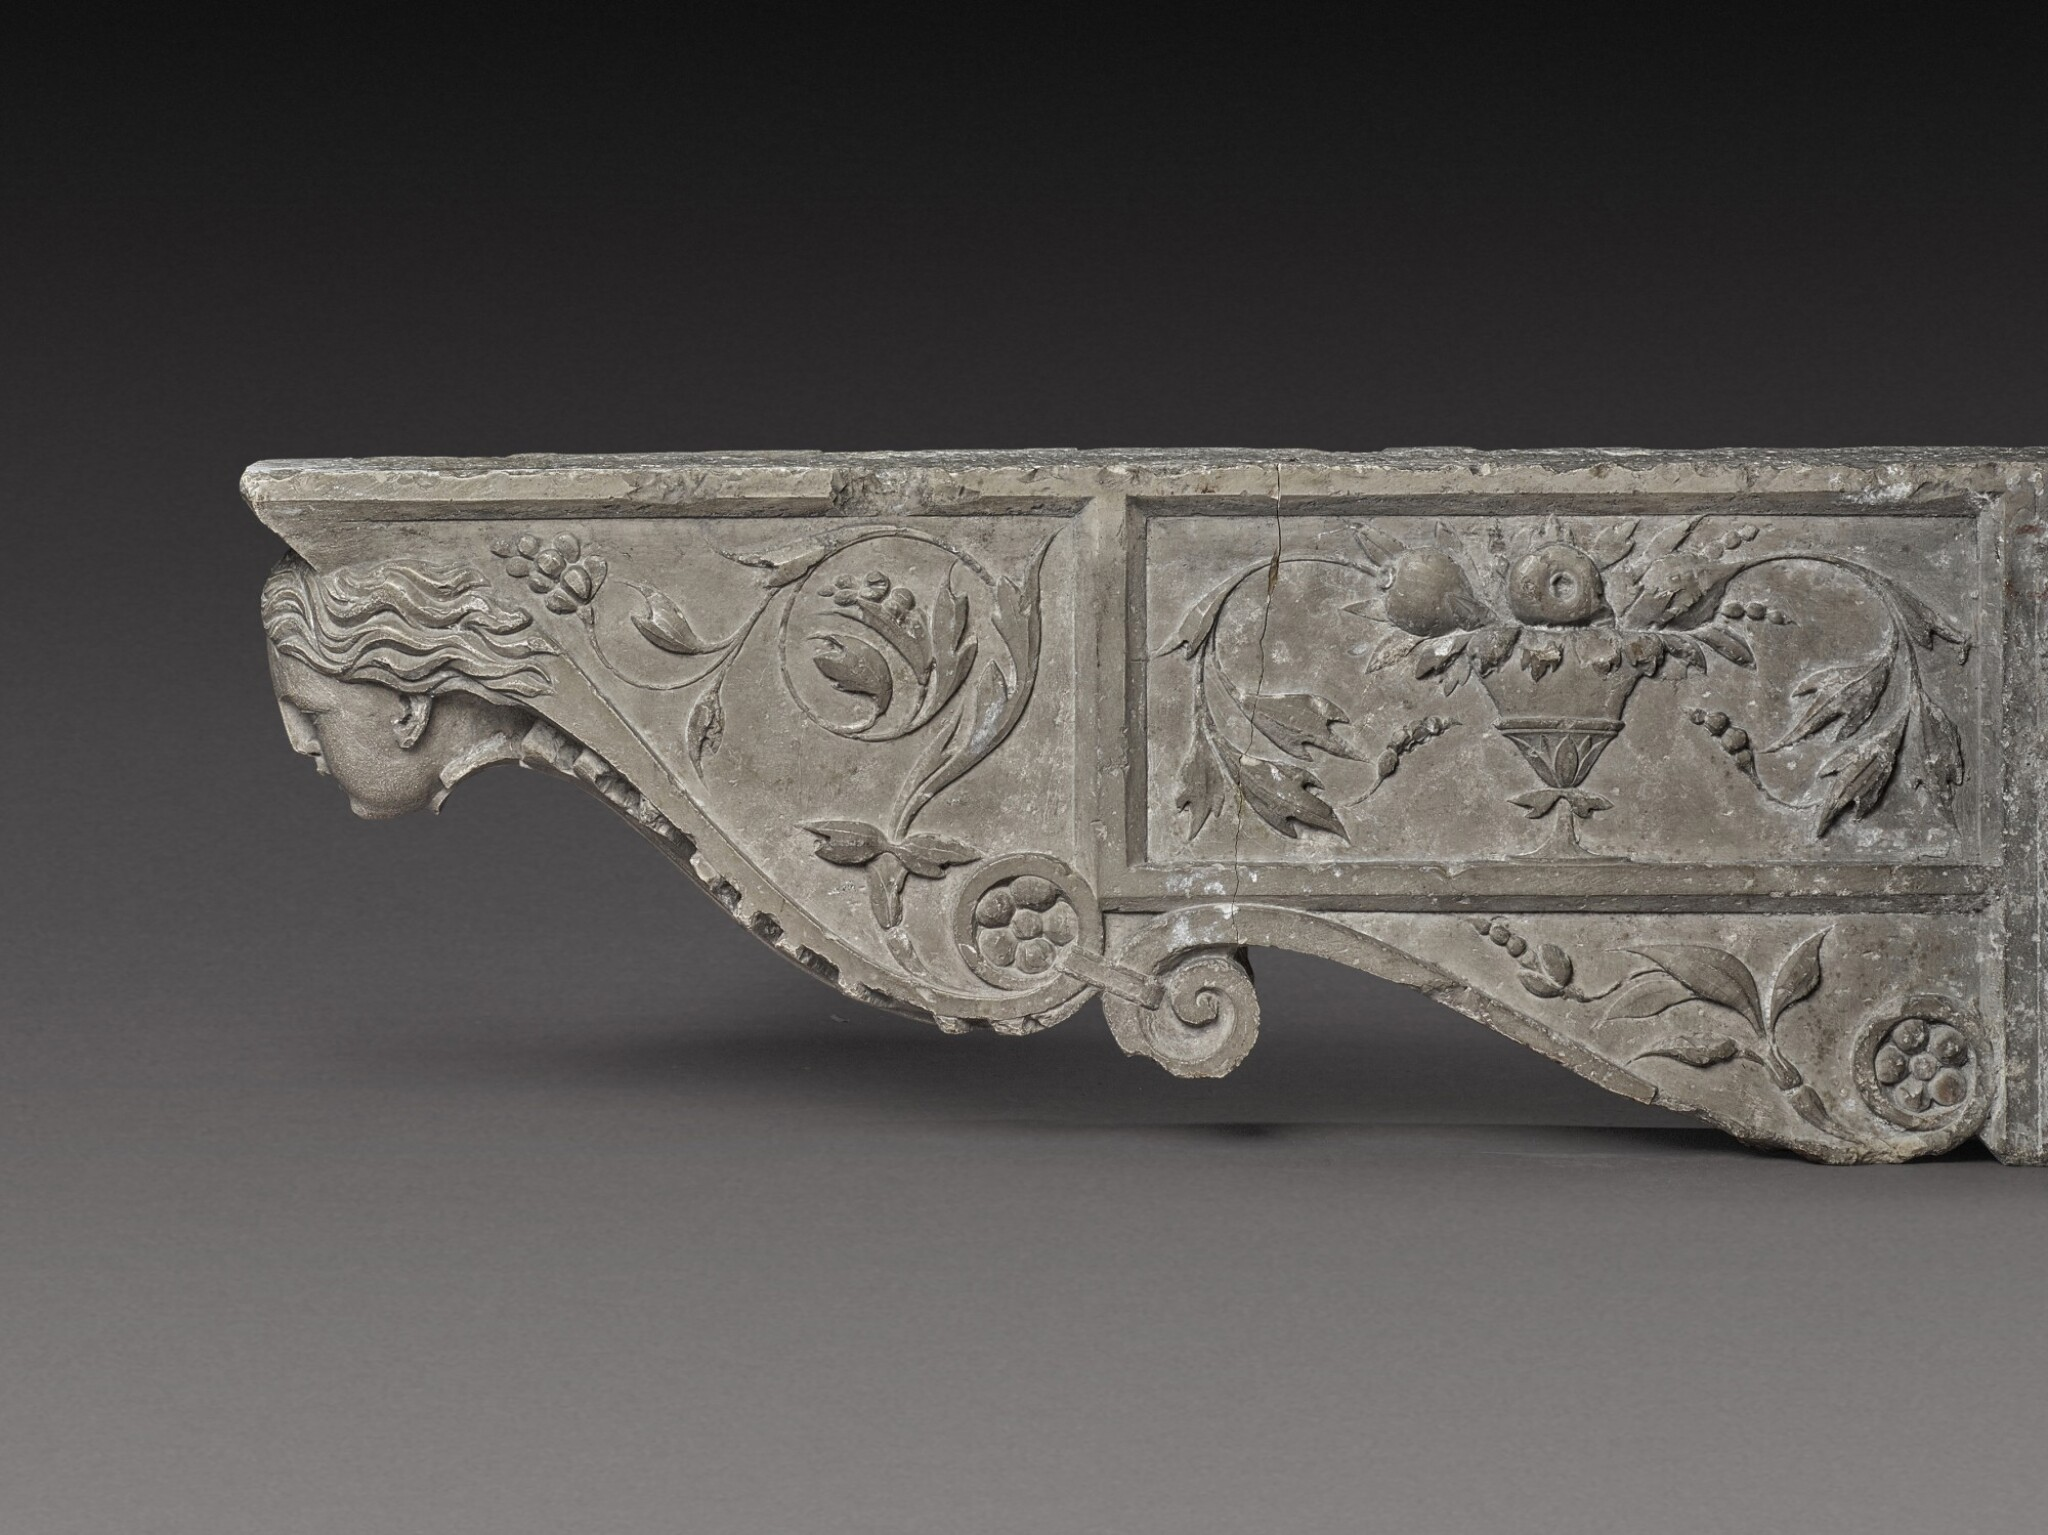 View 1 of Lot 129. Italian, Tuscany, 16th century | Pair of Architectural Brackets.